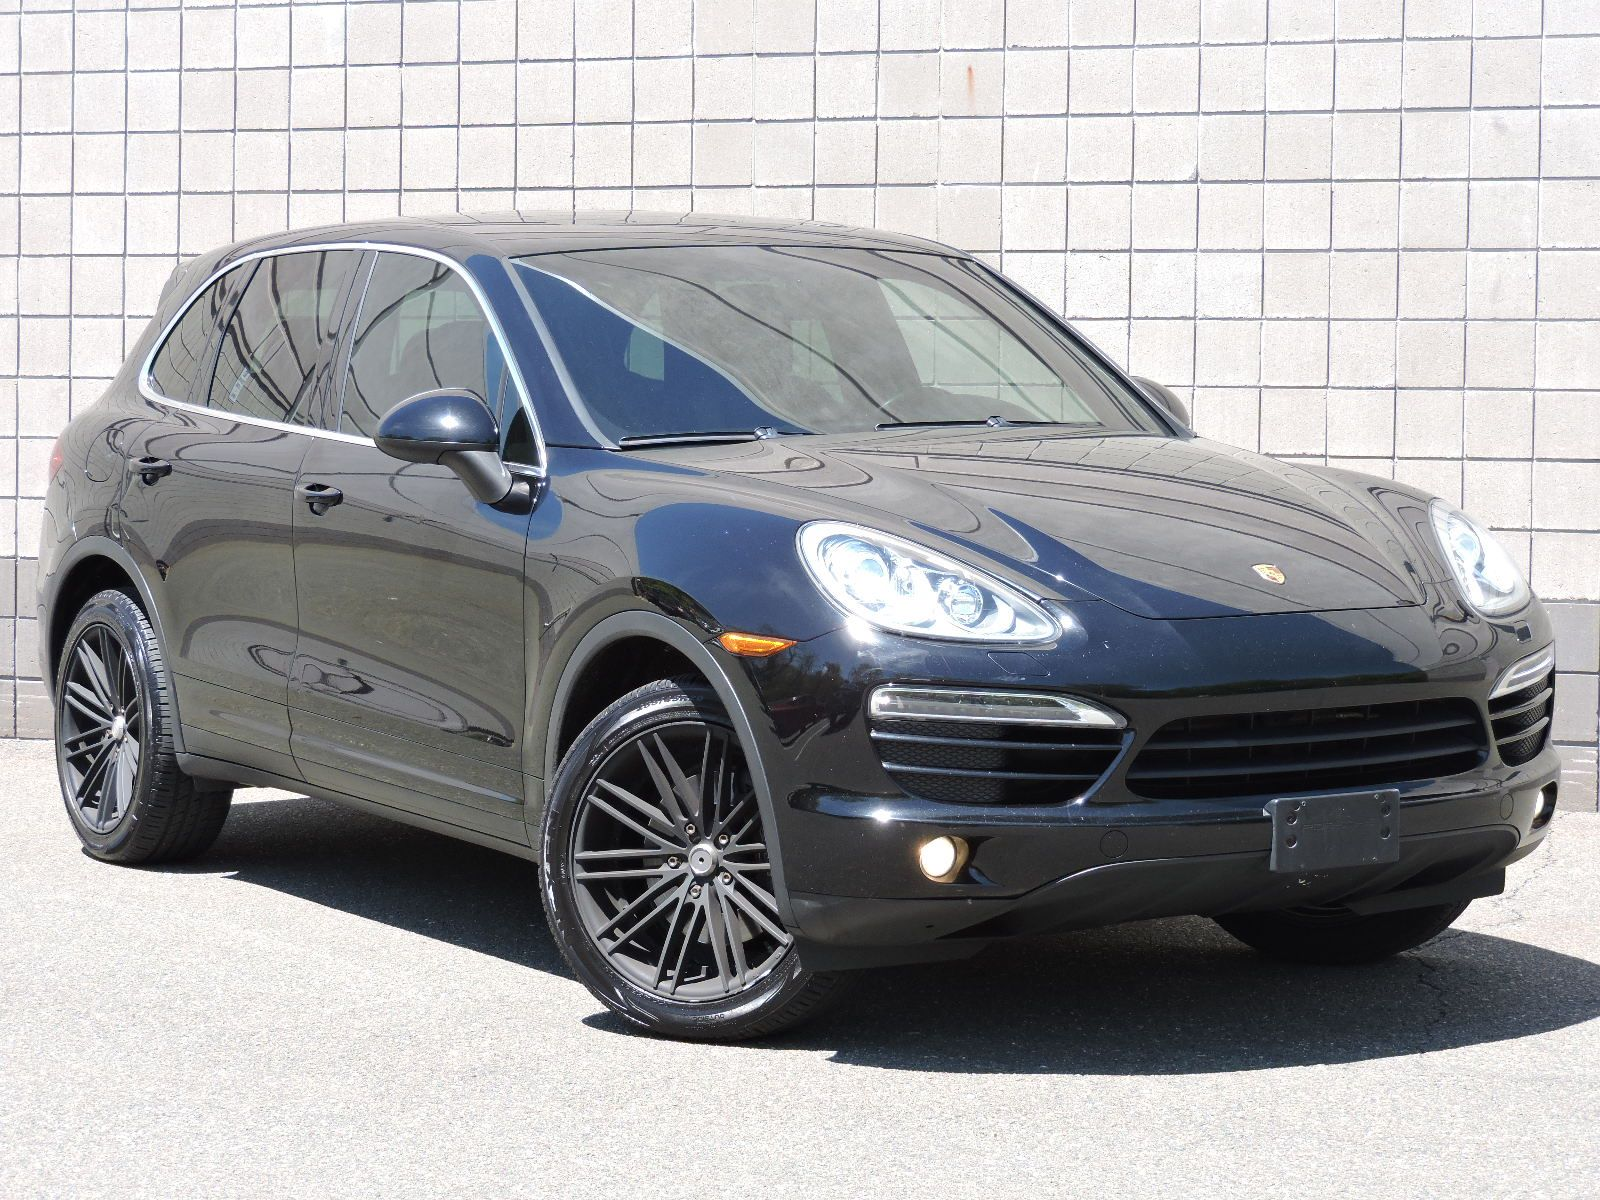 2011 Porsche Cayenne - All Wheel Drive - Navigation